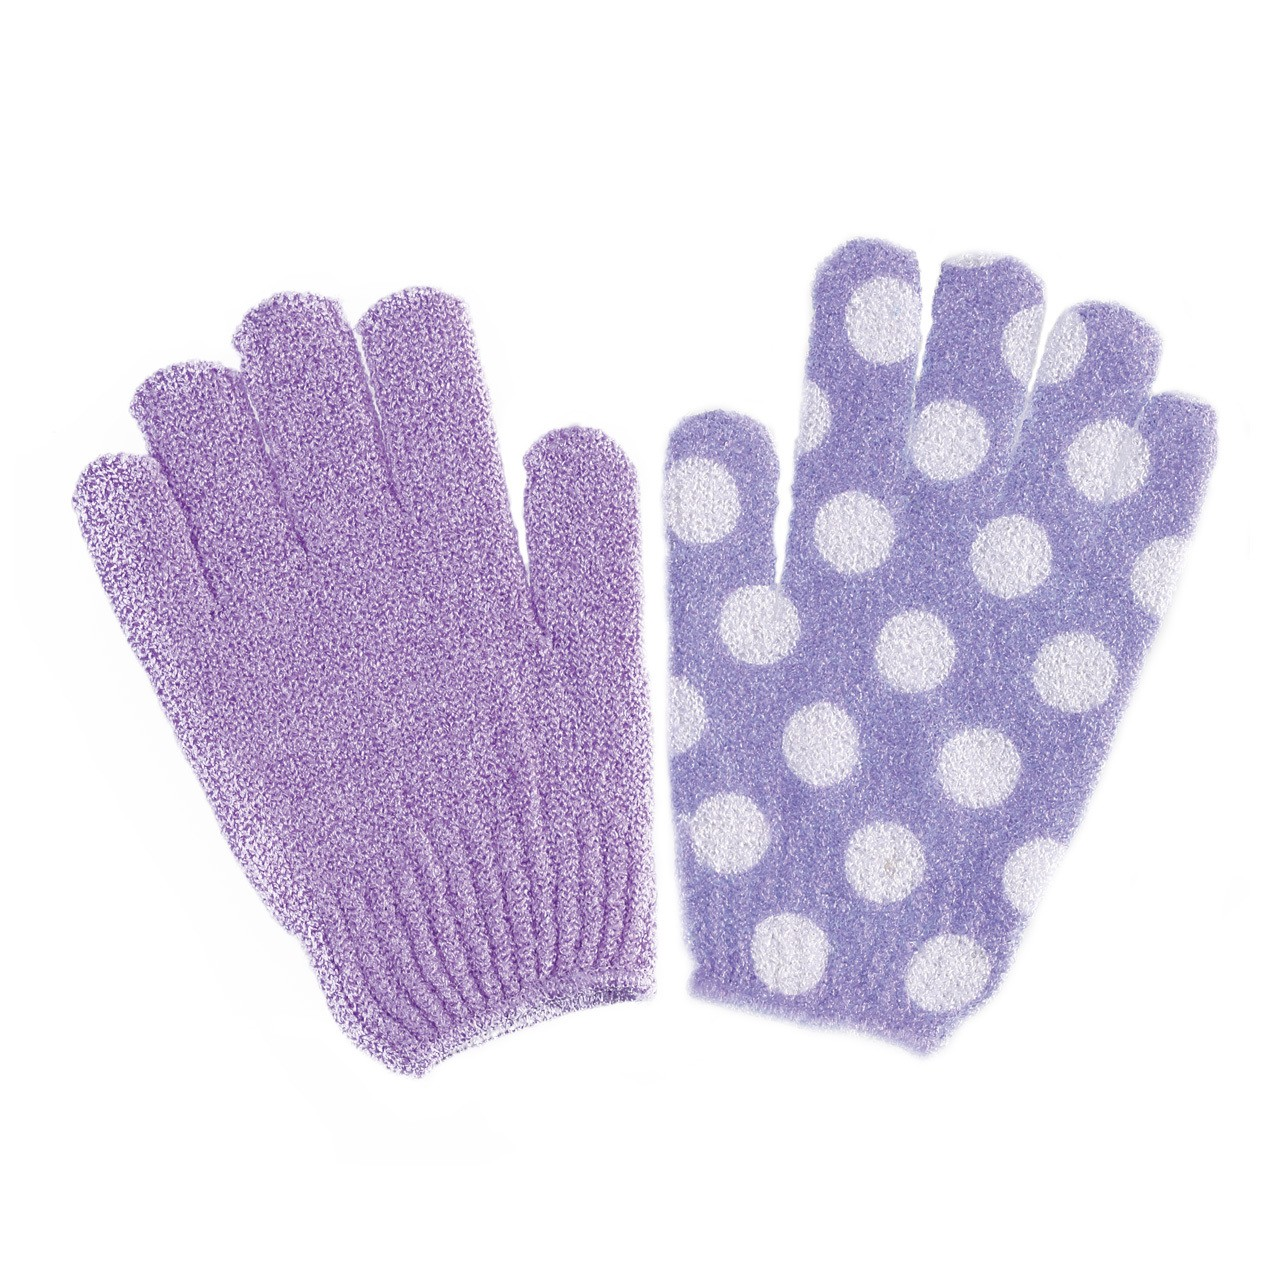 Peelinghandschuh - Exfoliating Shower Gloves (2 Paare)